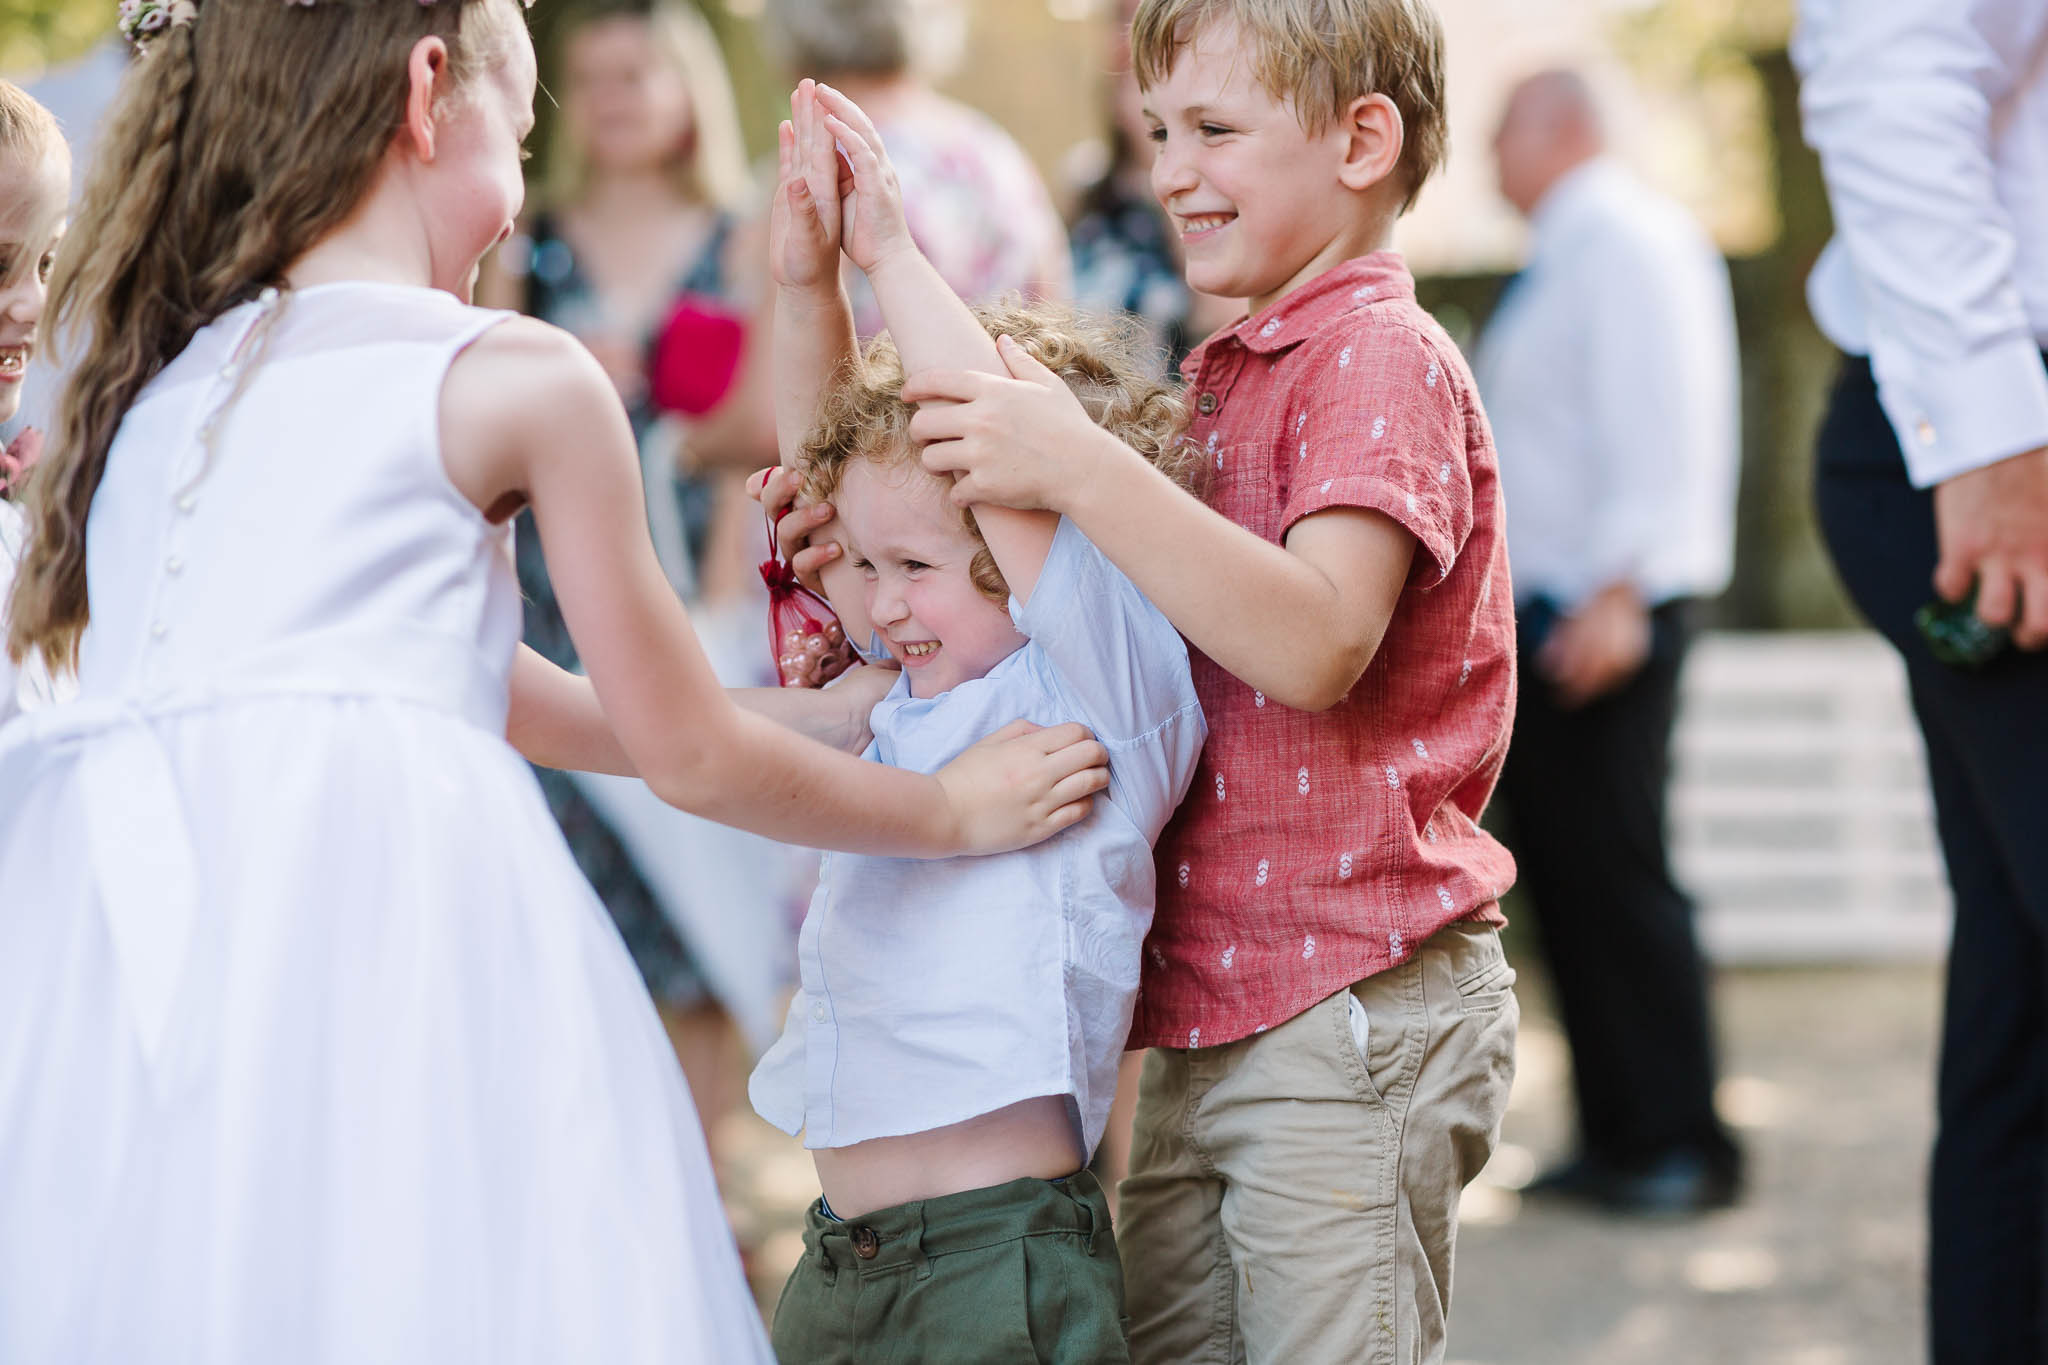 kids tickling each other at wedding